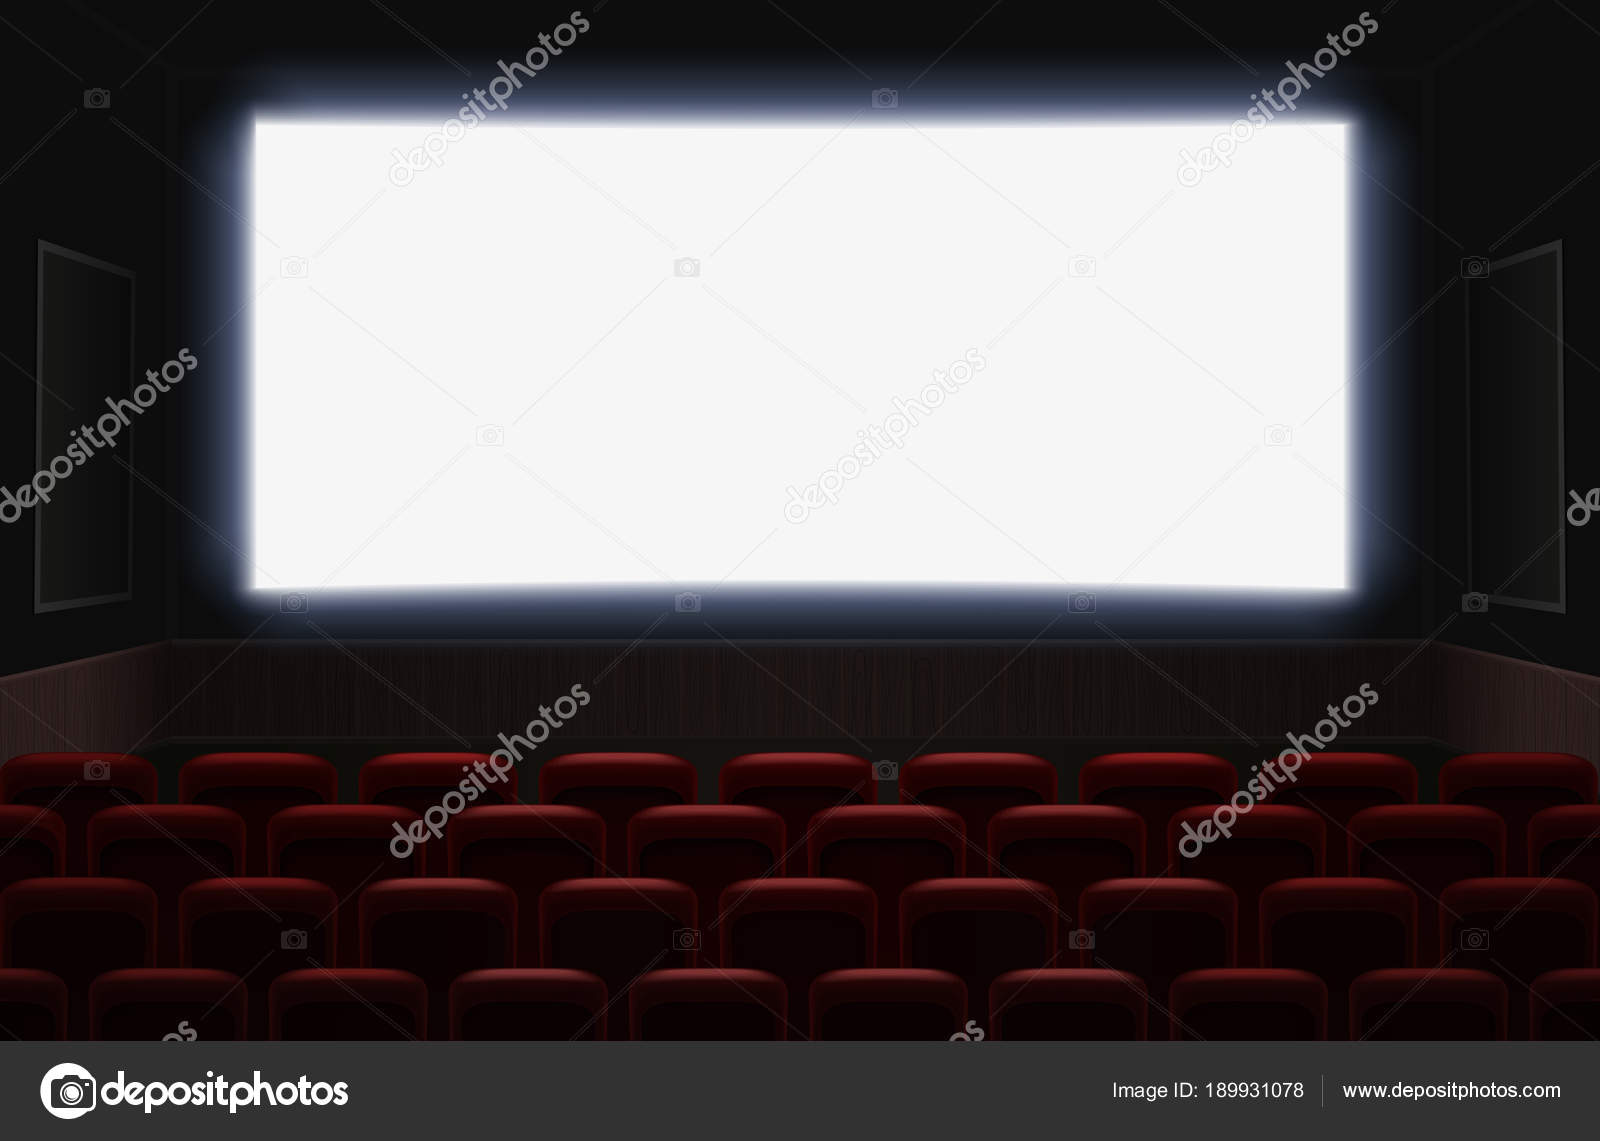 Interior Of A Cinema Movie Theatre With Shiny White Blank Screen Red Cinema Or Theater Seats In Front Of The Screen Empty Cinema Auditorium Background Vector Illustration Stock Vector C Lembergvector 189931078